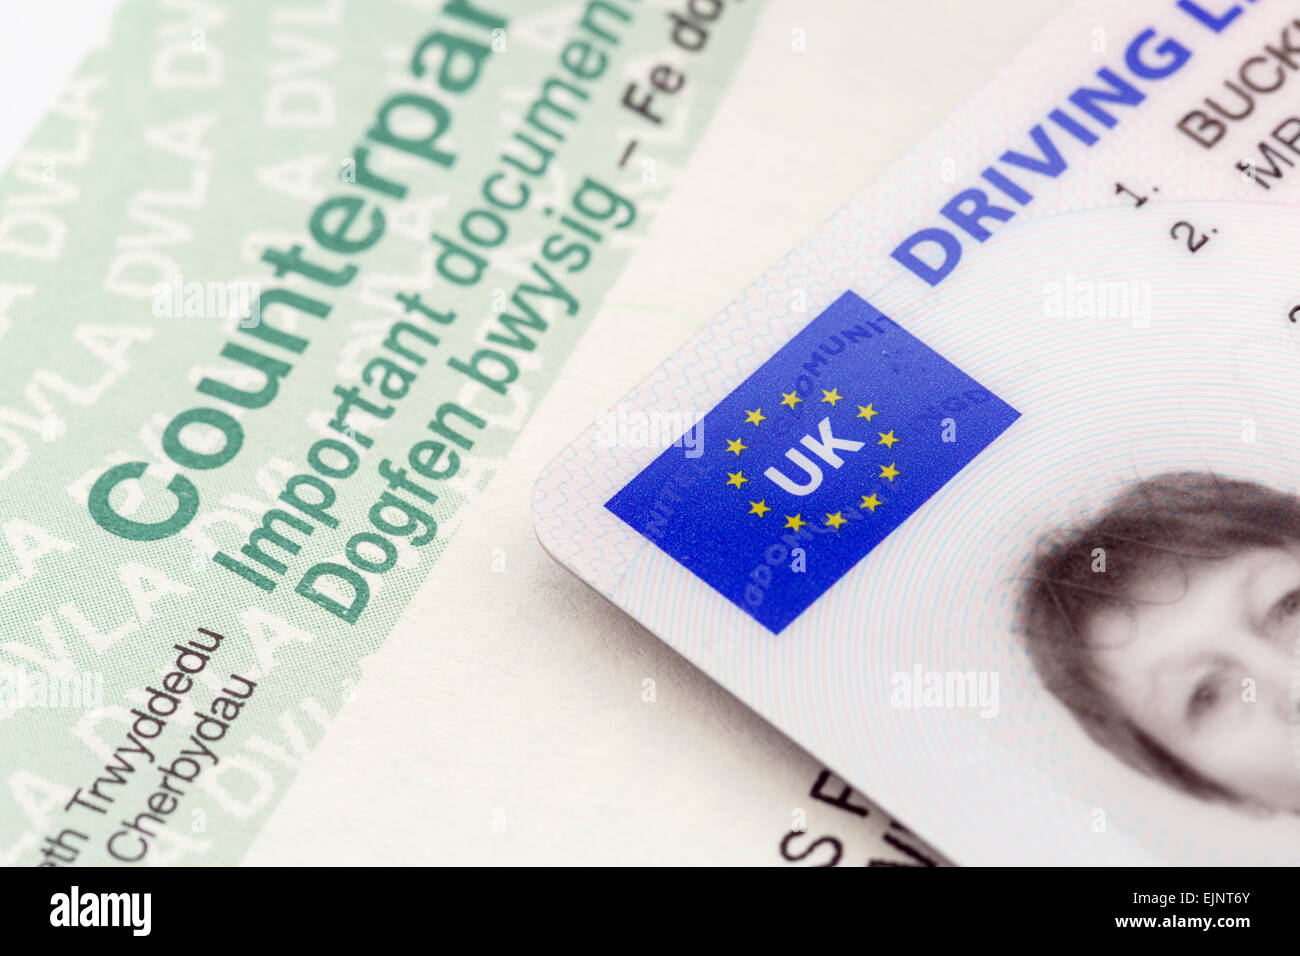 A UK plastic card photographic driving licence on a bilingual paper counterpart document in English and Welsh language - Stock Image